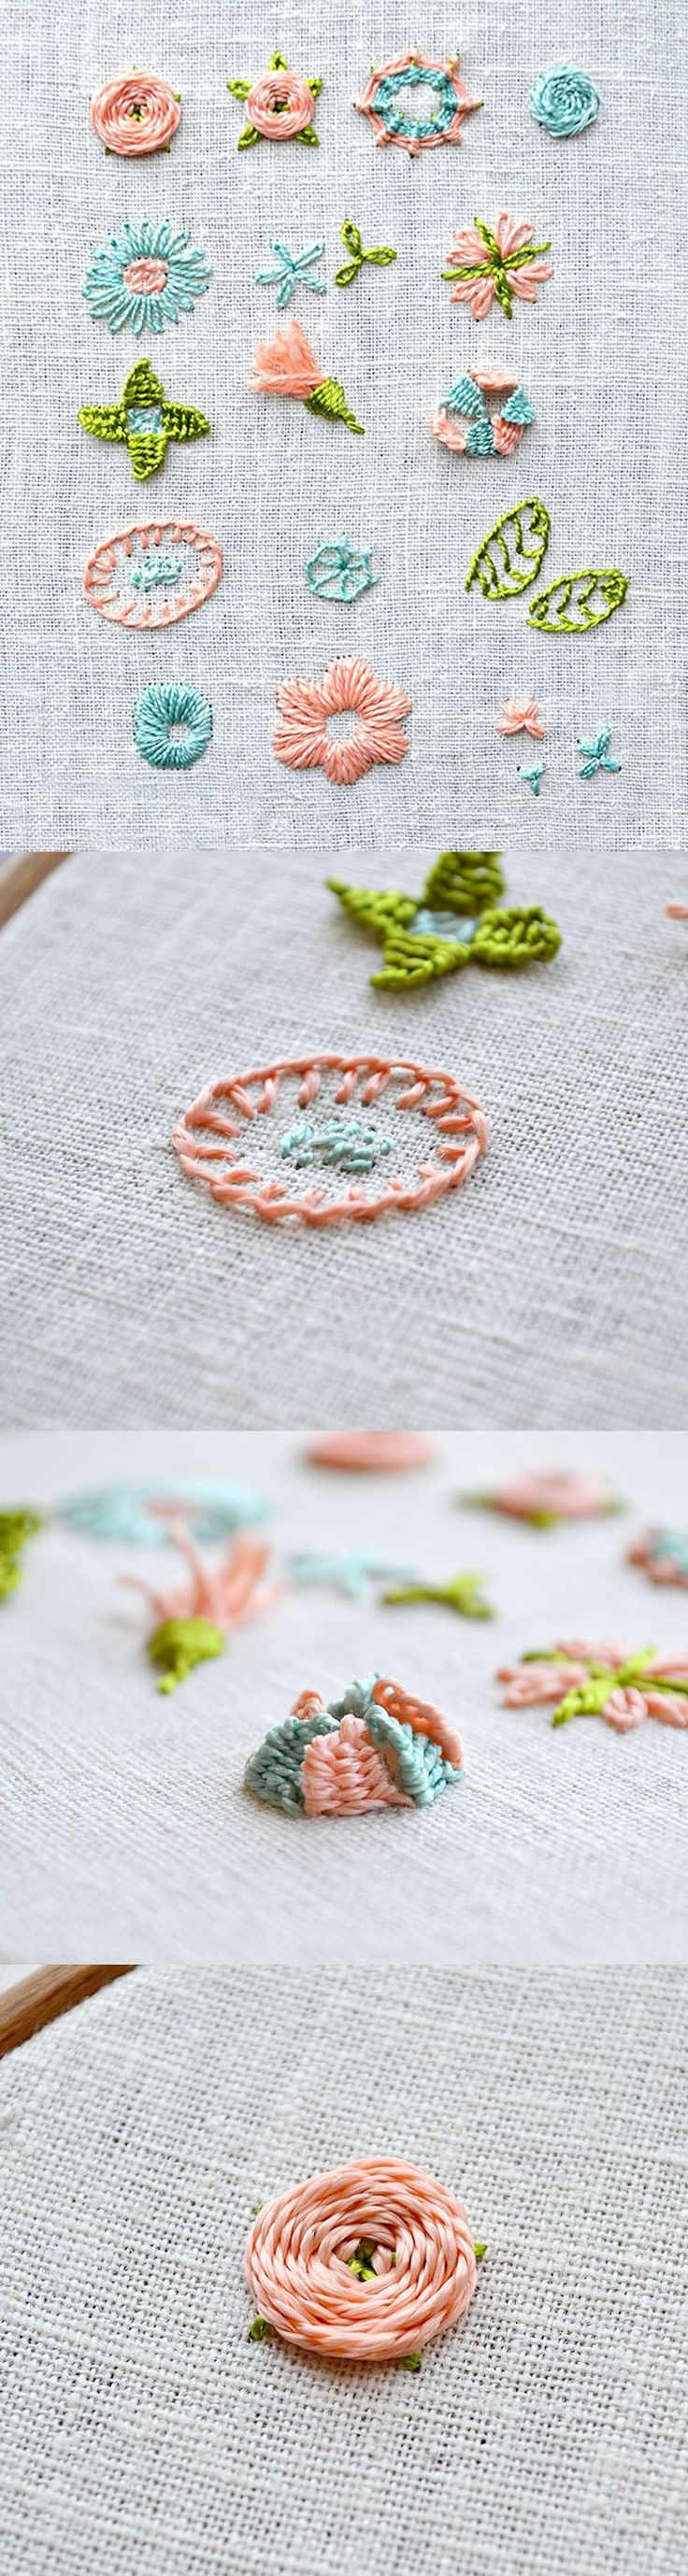 Master-class on embroidery of a small picture with beads will help to master this technique of needlework